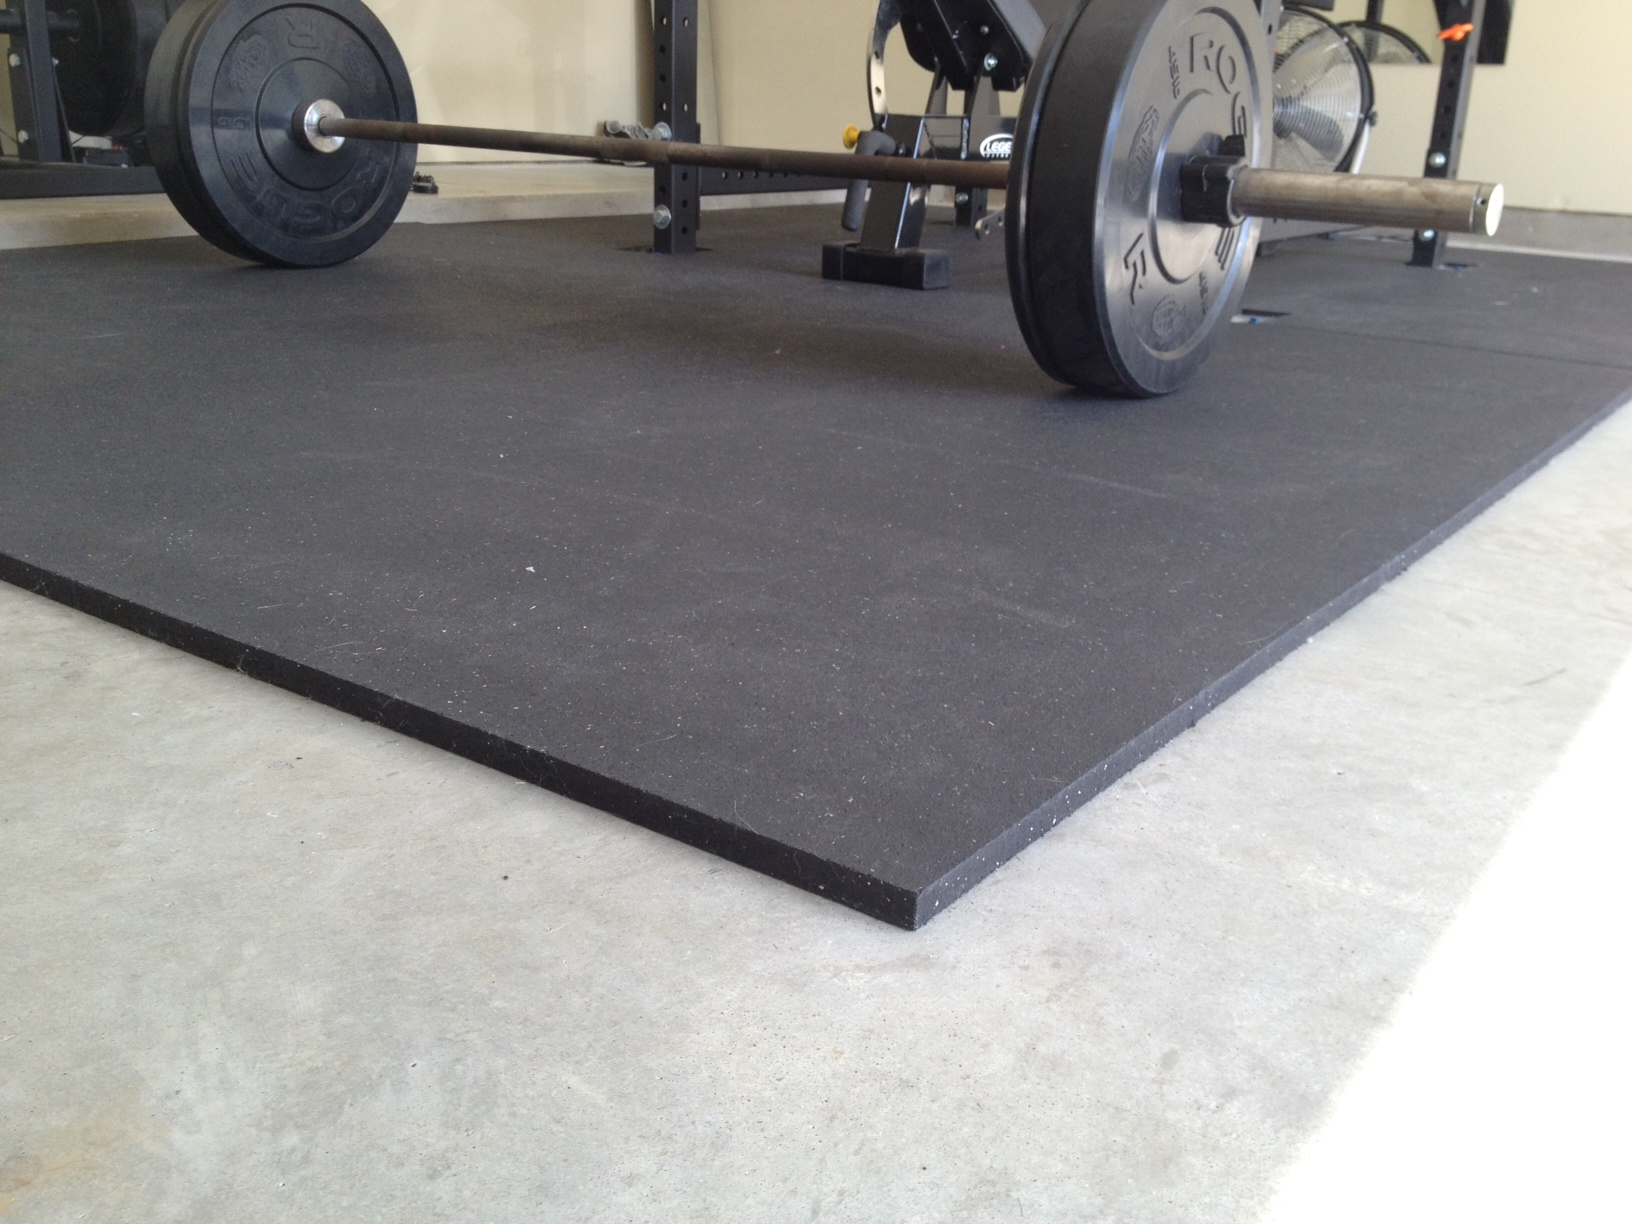 Rubber floor mats workout -